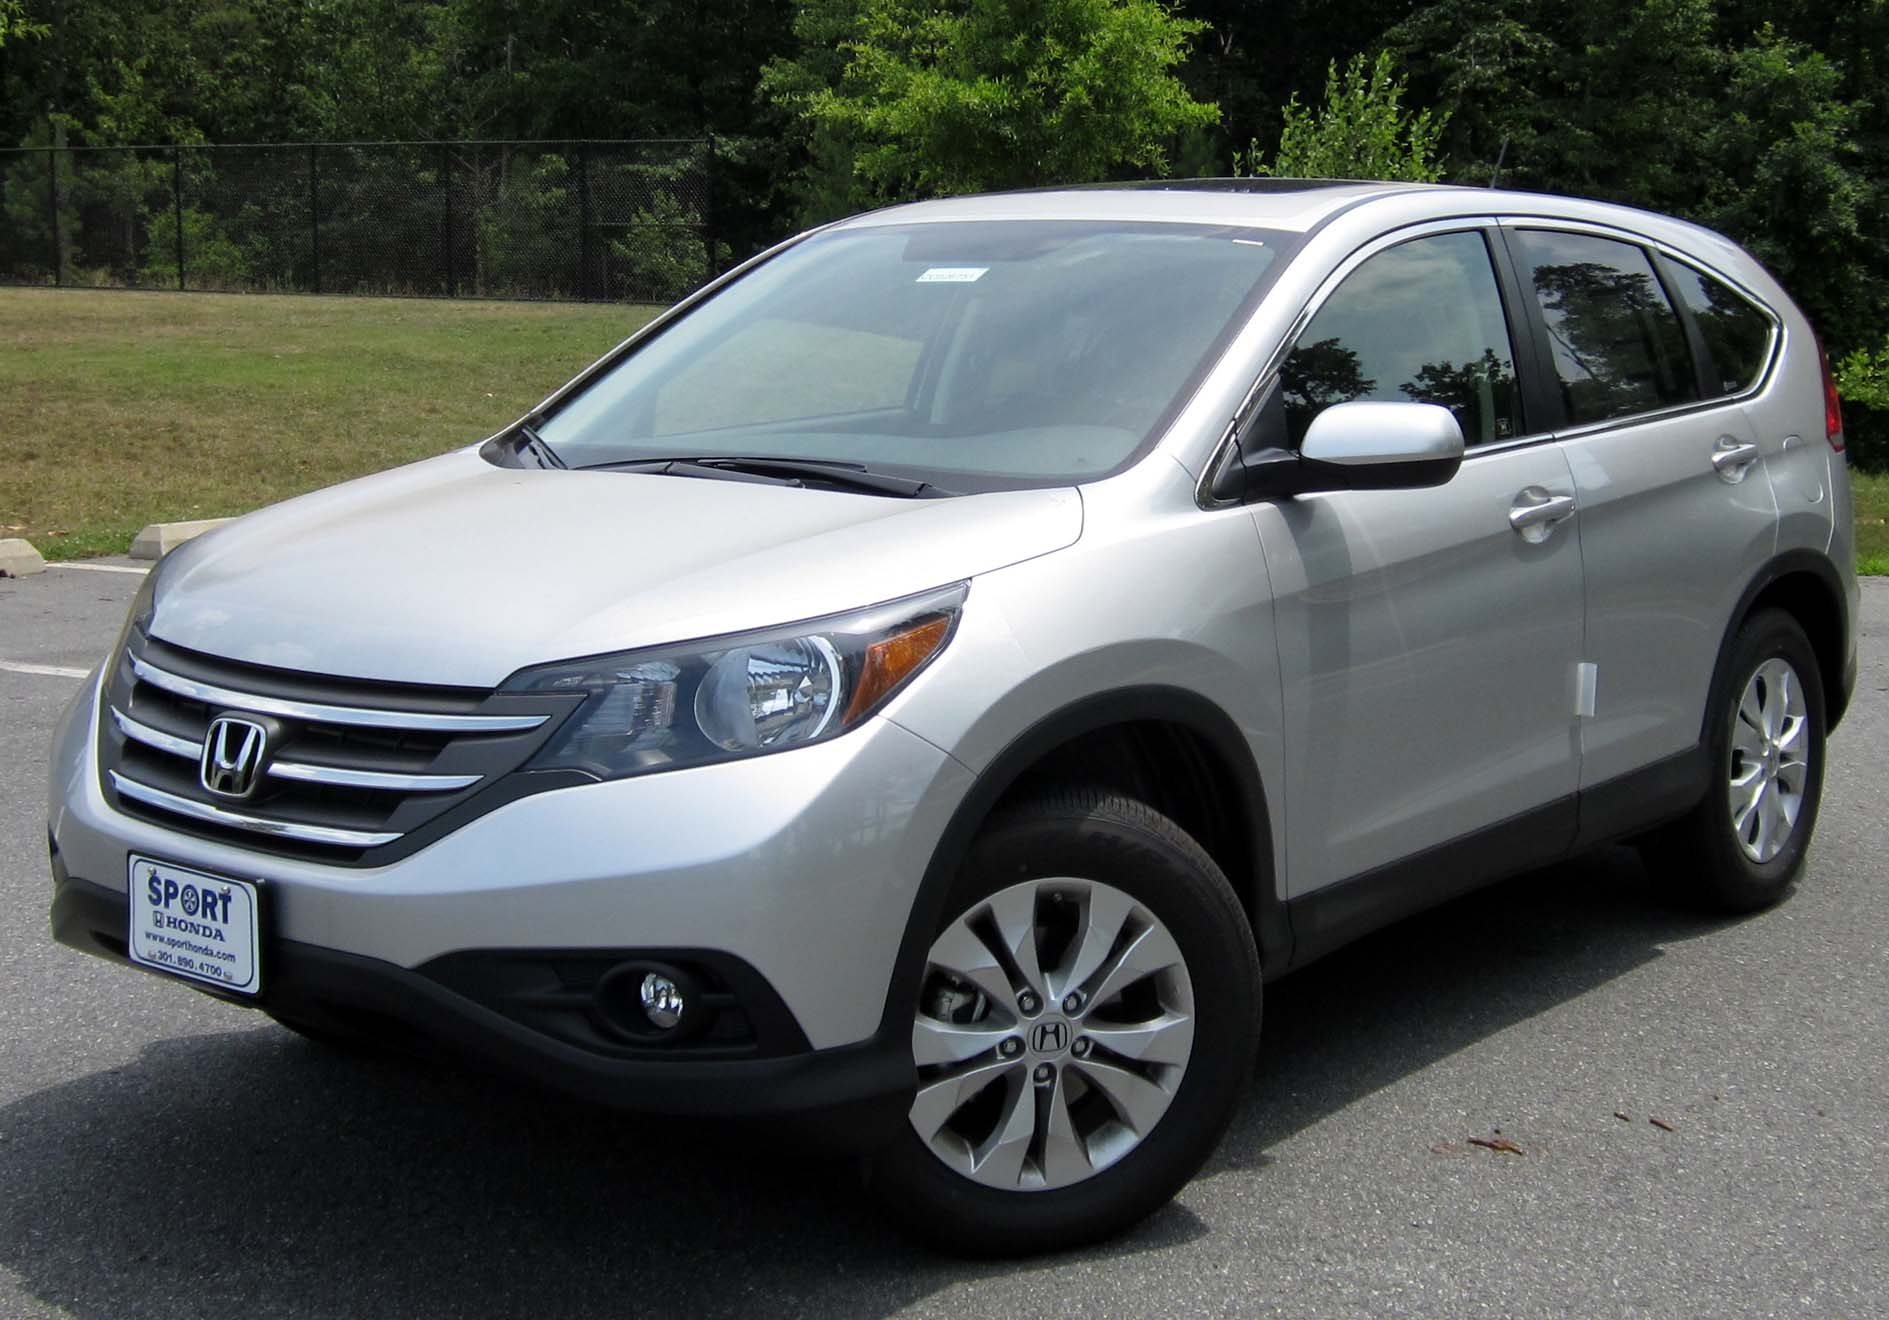 File:2012 Honda CR-V EX -- 07-11-2012 1.JPG - Wikimedia Commons